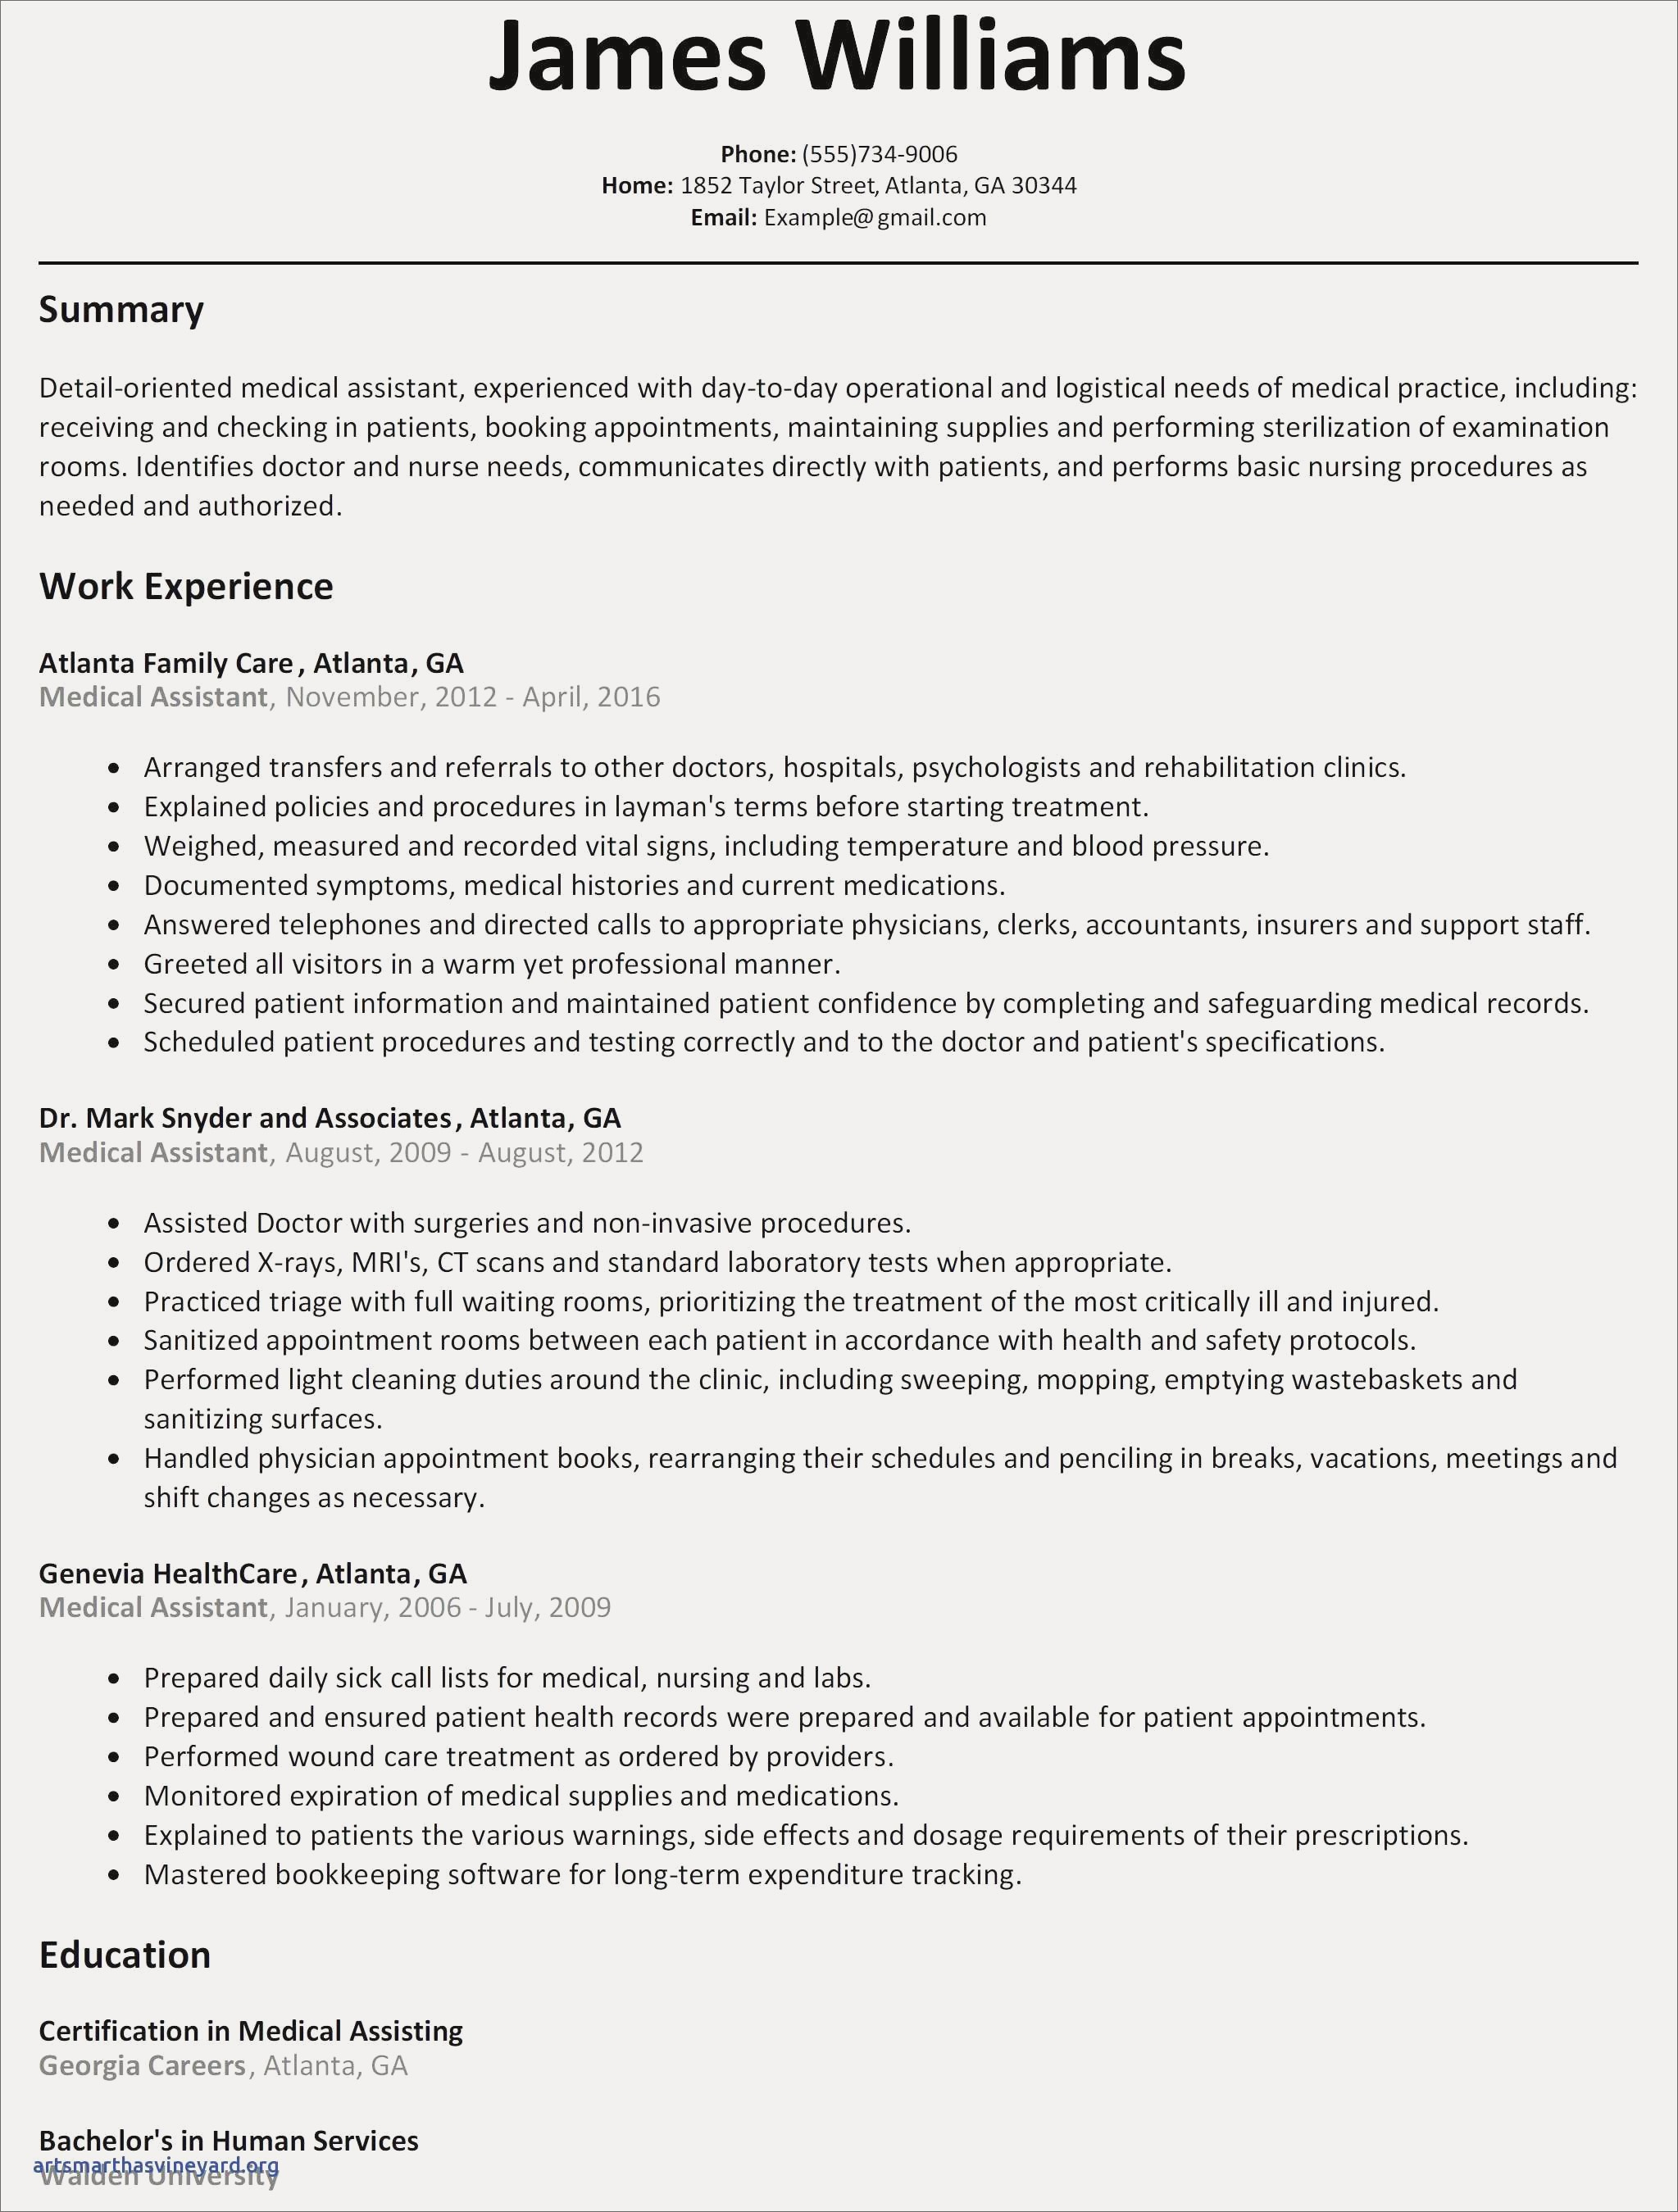 Best Nursing Resume - Nursing Resume Valid Resume for Nurse Elegant New Nurse Resume